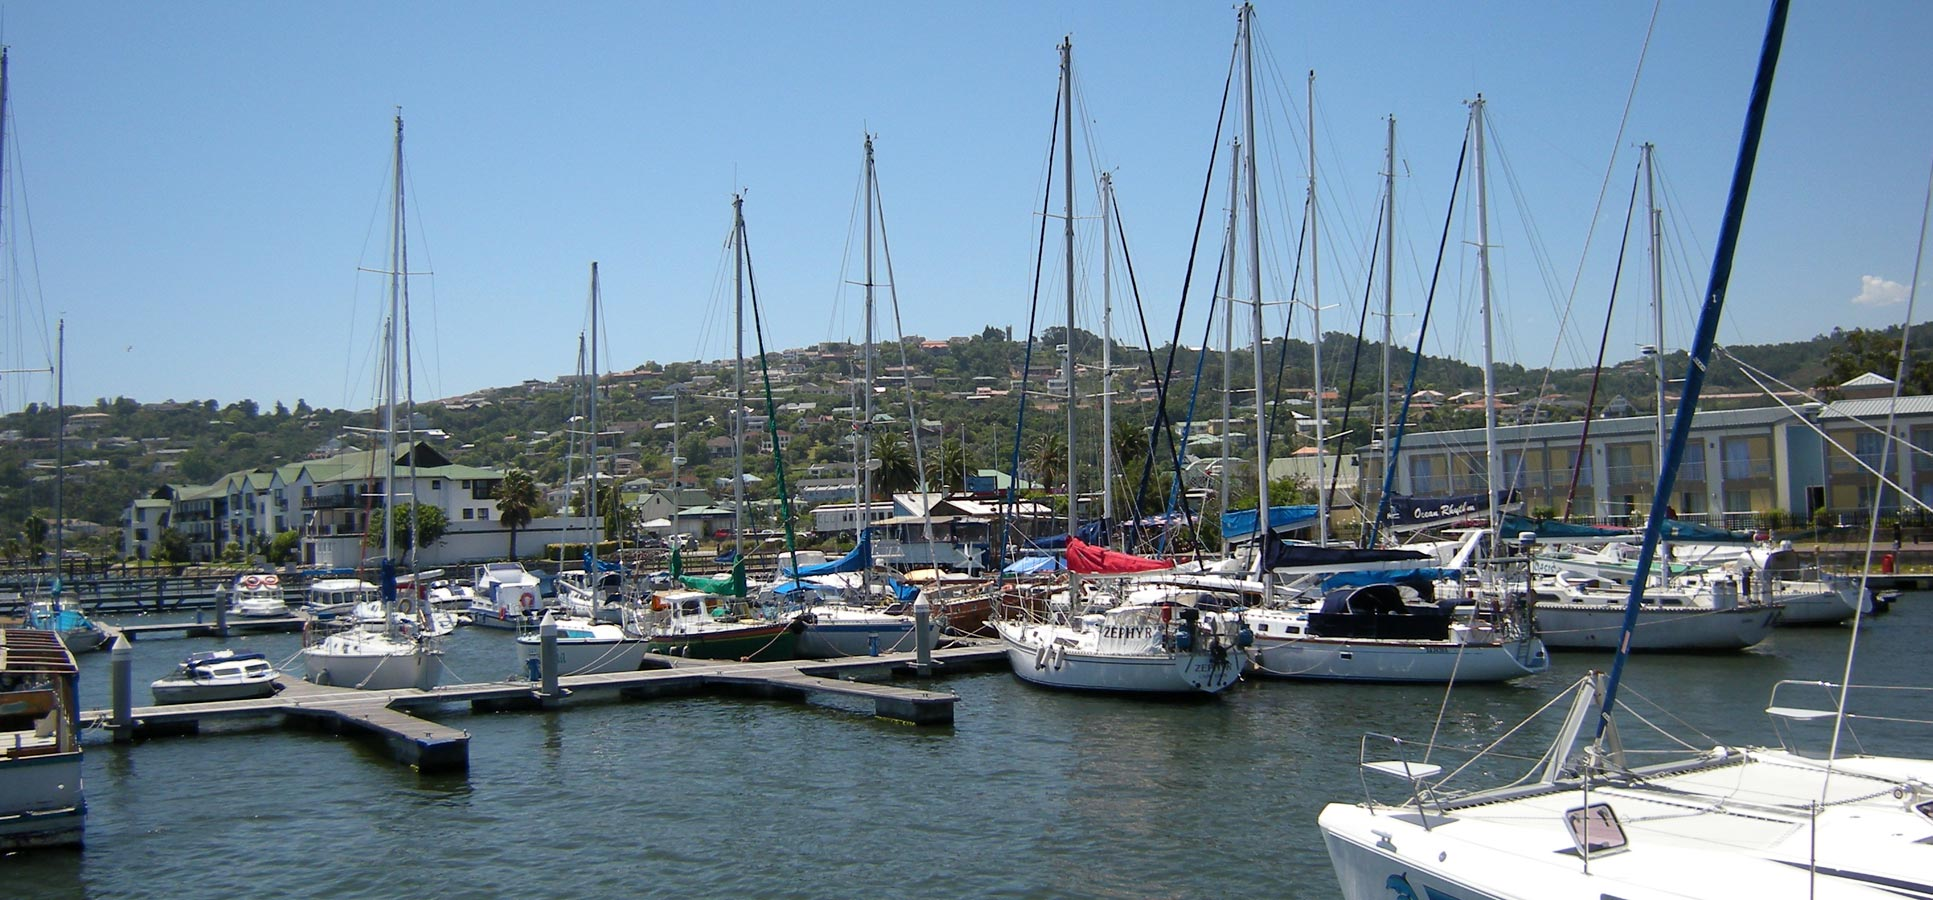 Travel Jimmy travel reviews Knysna South Africa